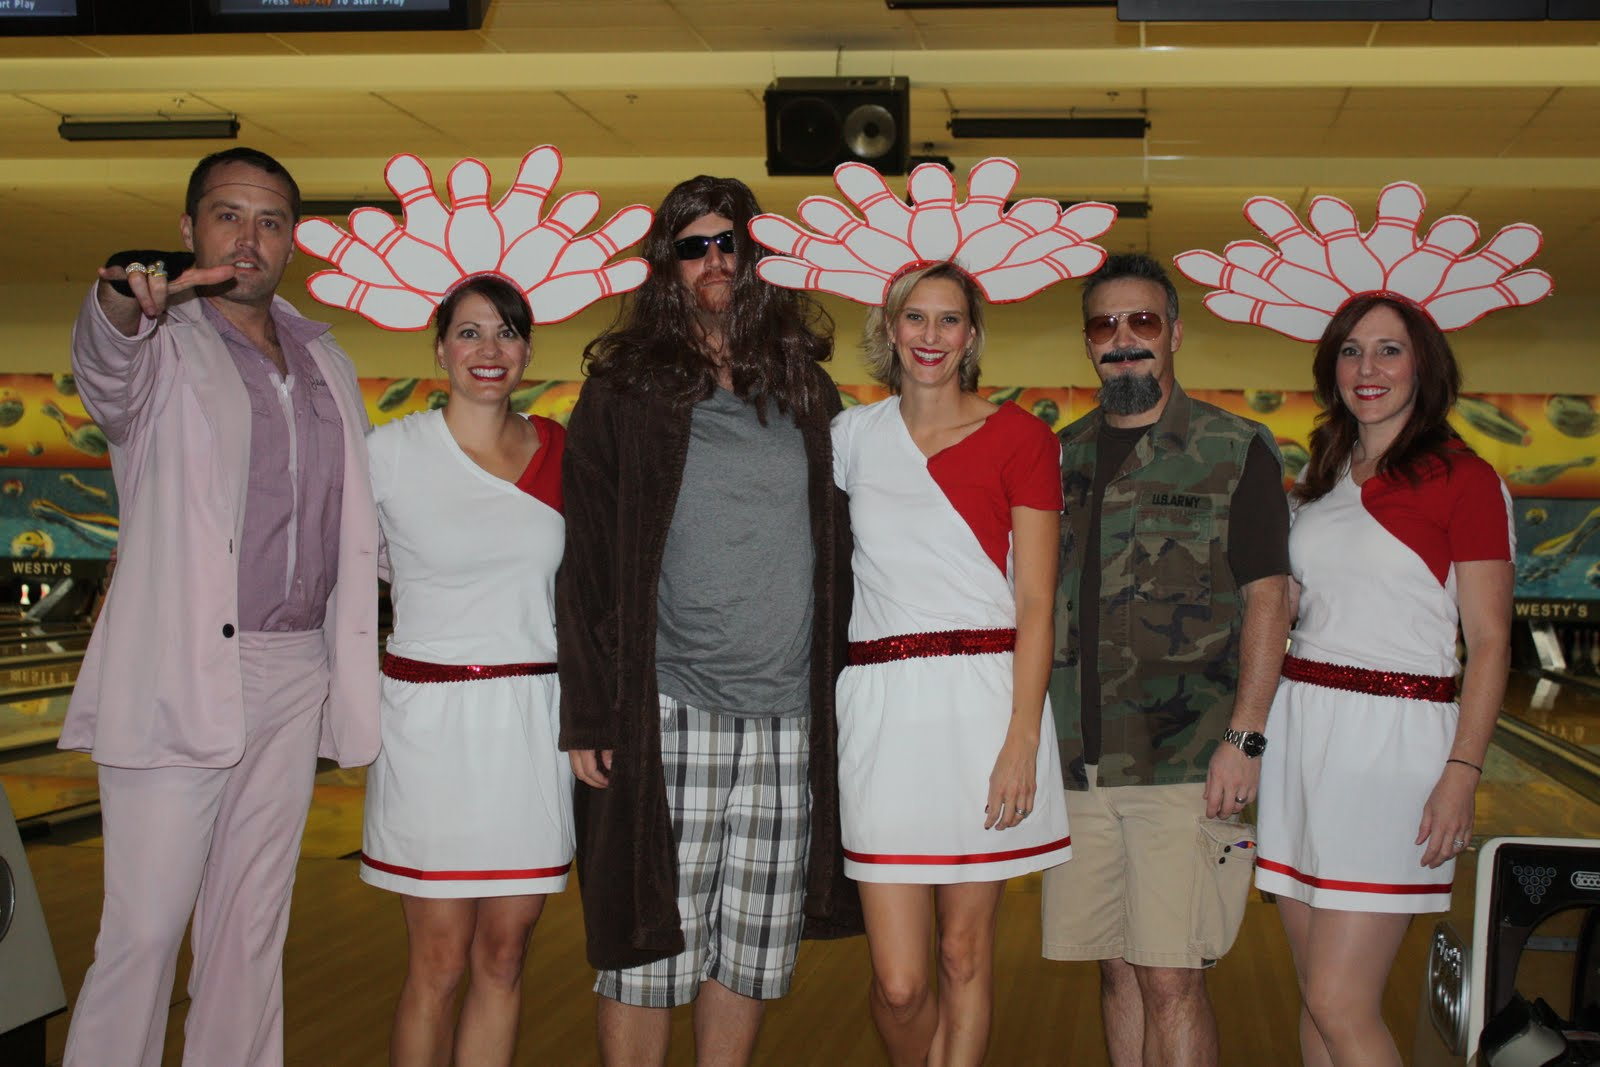 b league bowling costumes